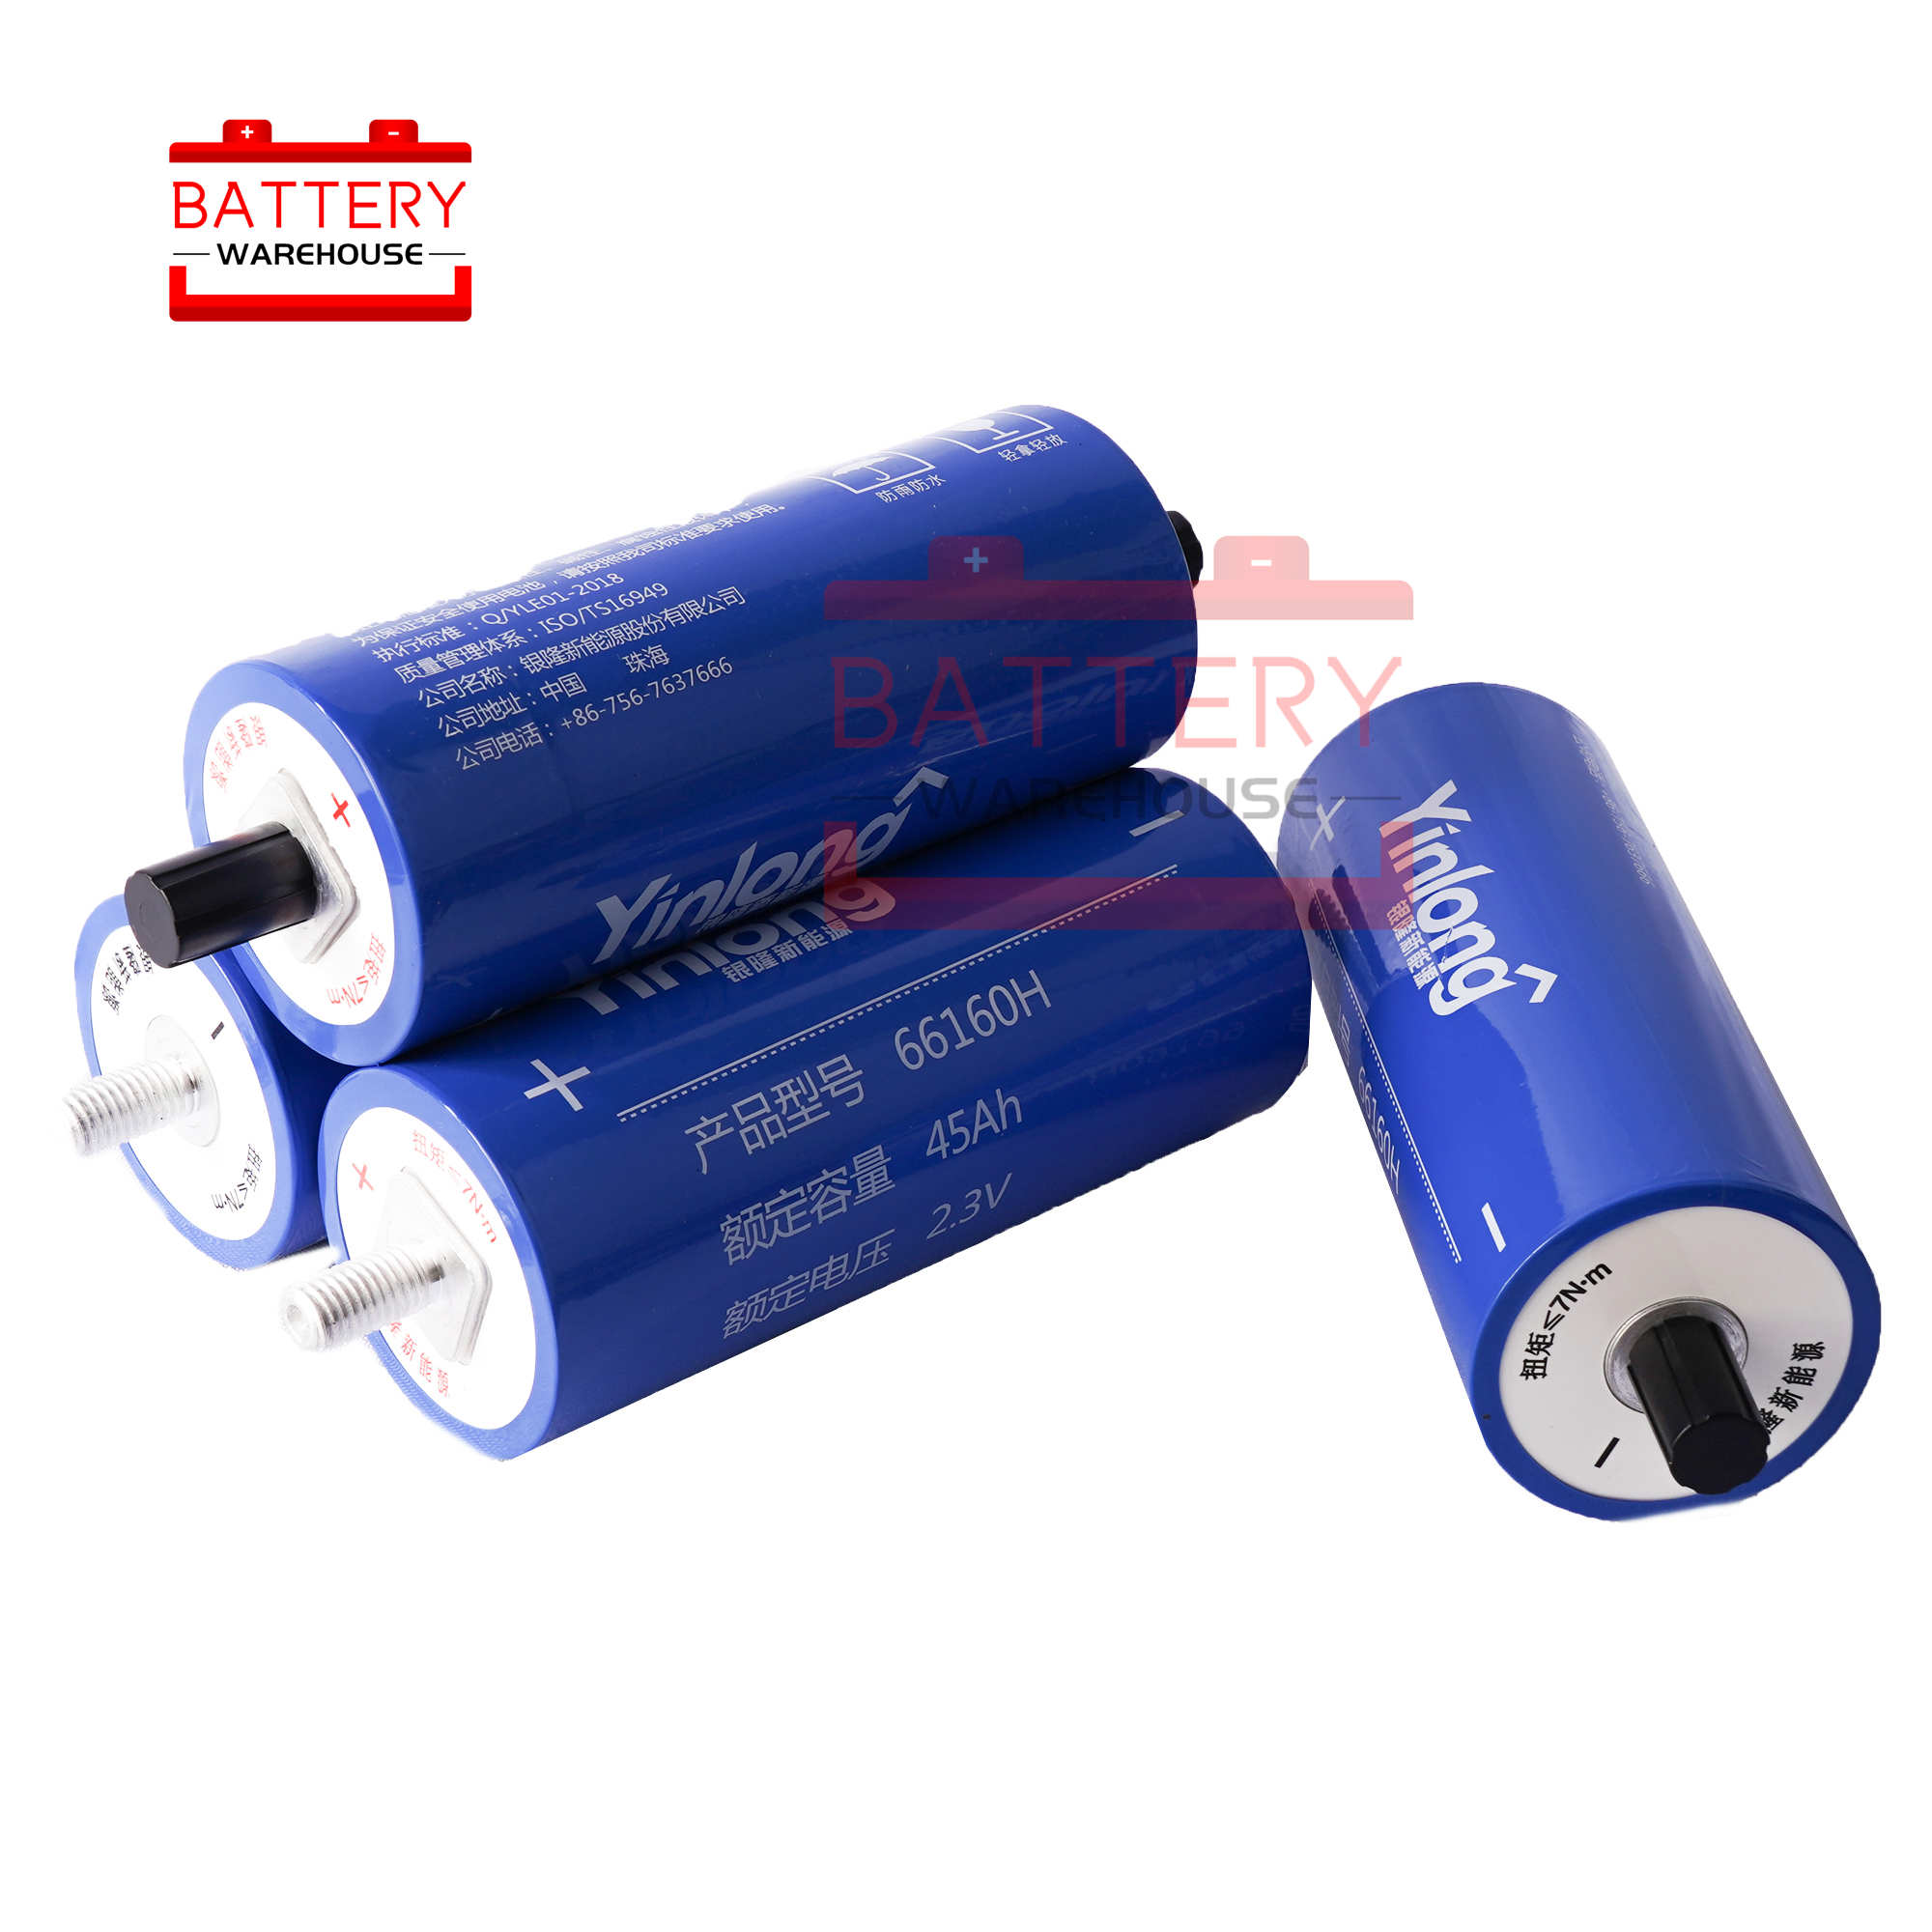 12PCS 2.3v 45Ah LTO <font><b>66160</b></font> Lithium Titanate Battery Cell new not 2.4v40AH 66160H YINLONG 12v 14.4v Power Long Cycle Life Stocks image